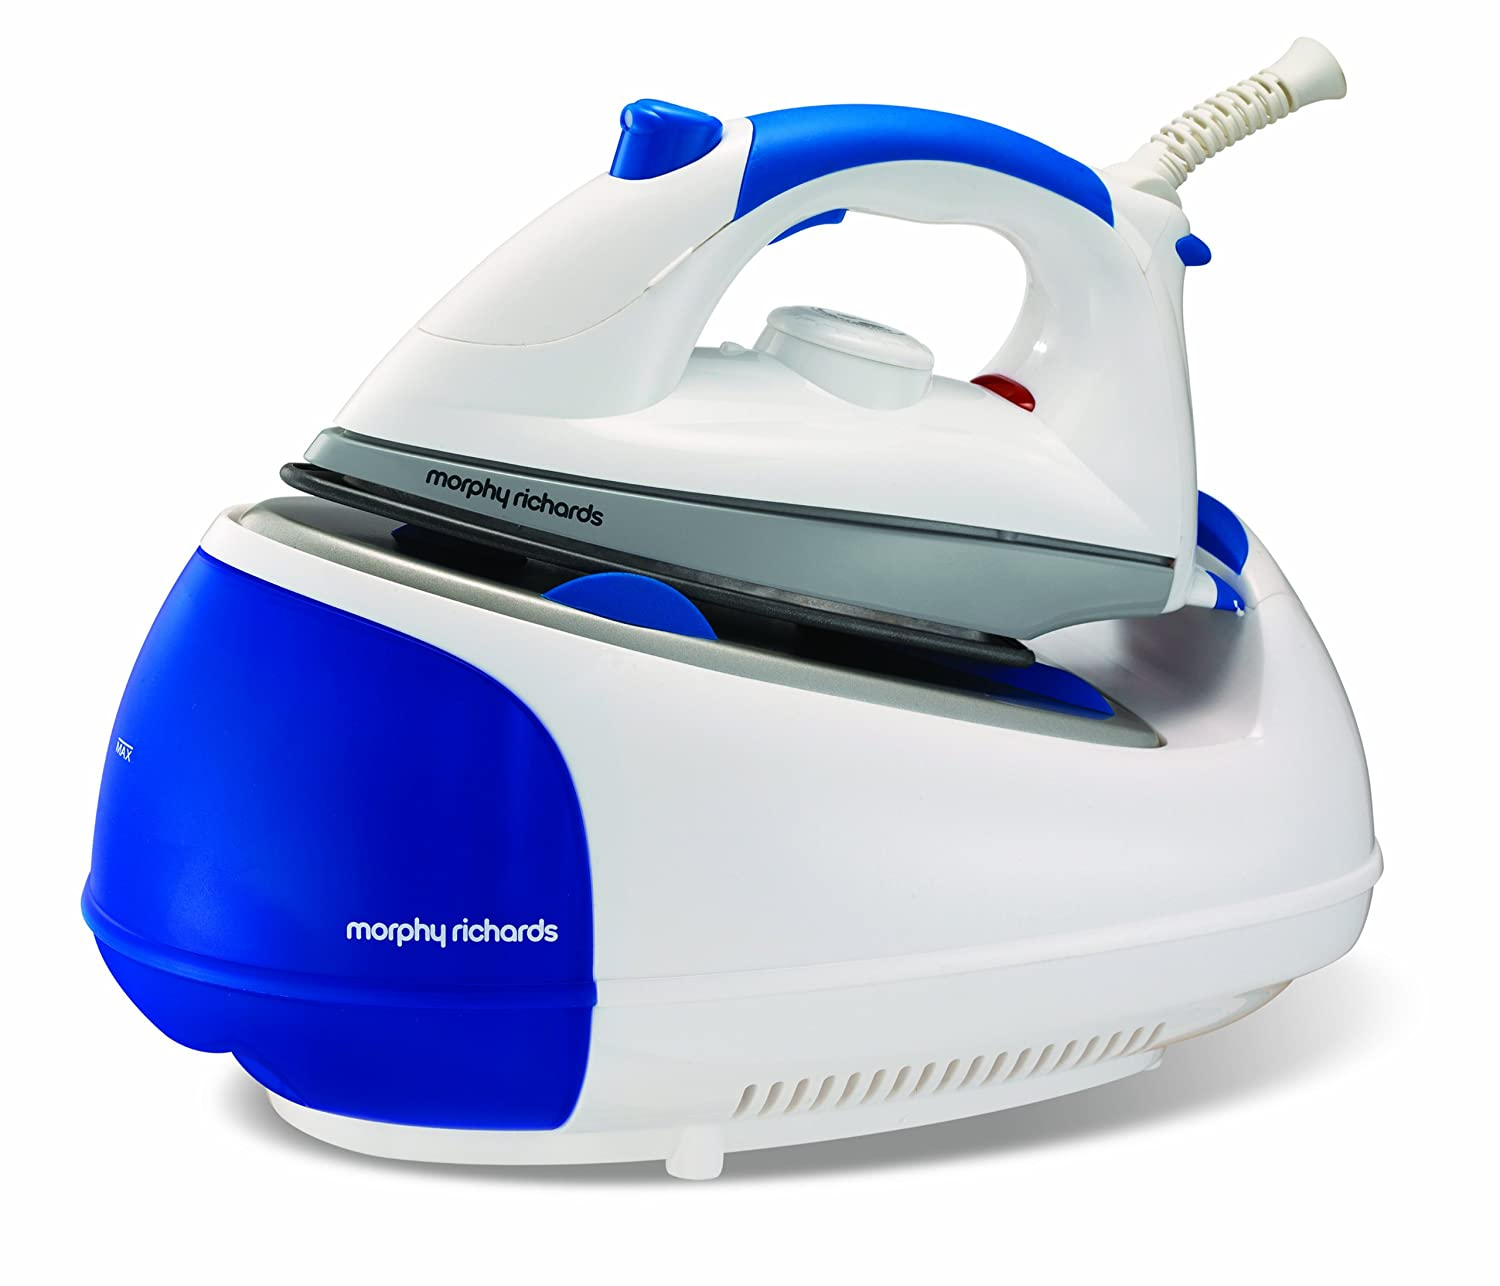 Morphy Richards Jet Steam Steam Generator Diamond Soleplate